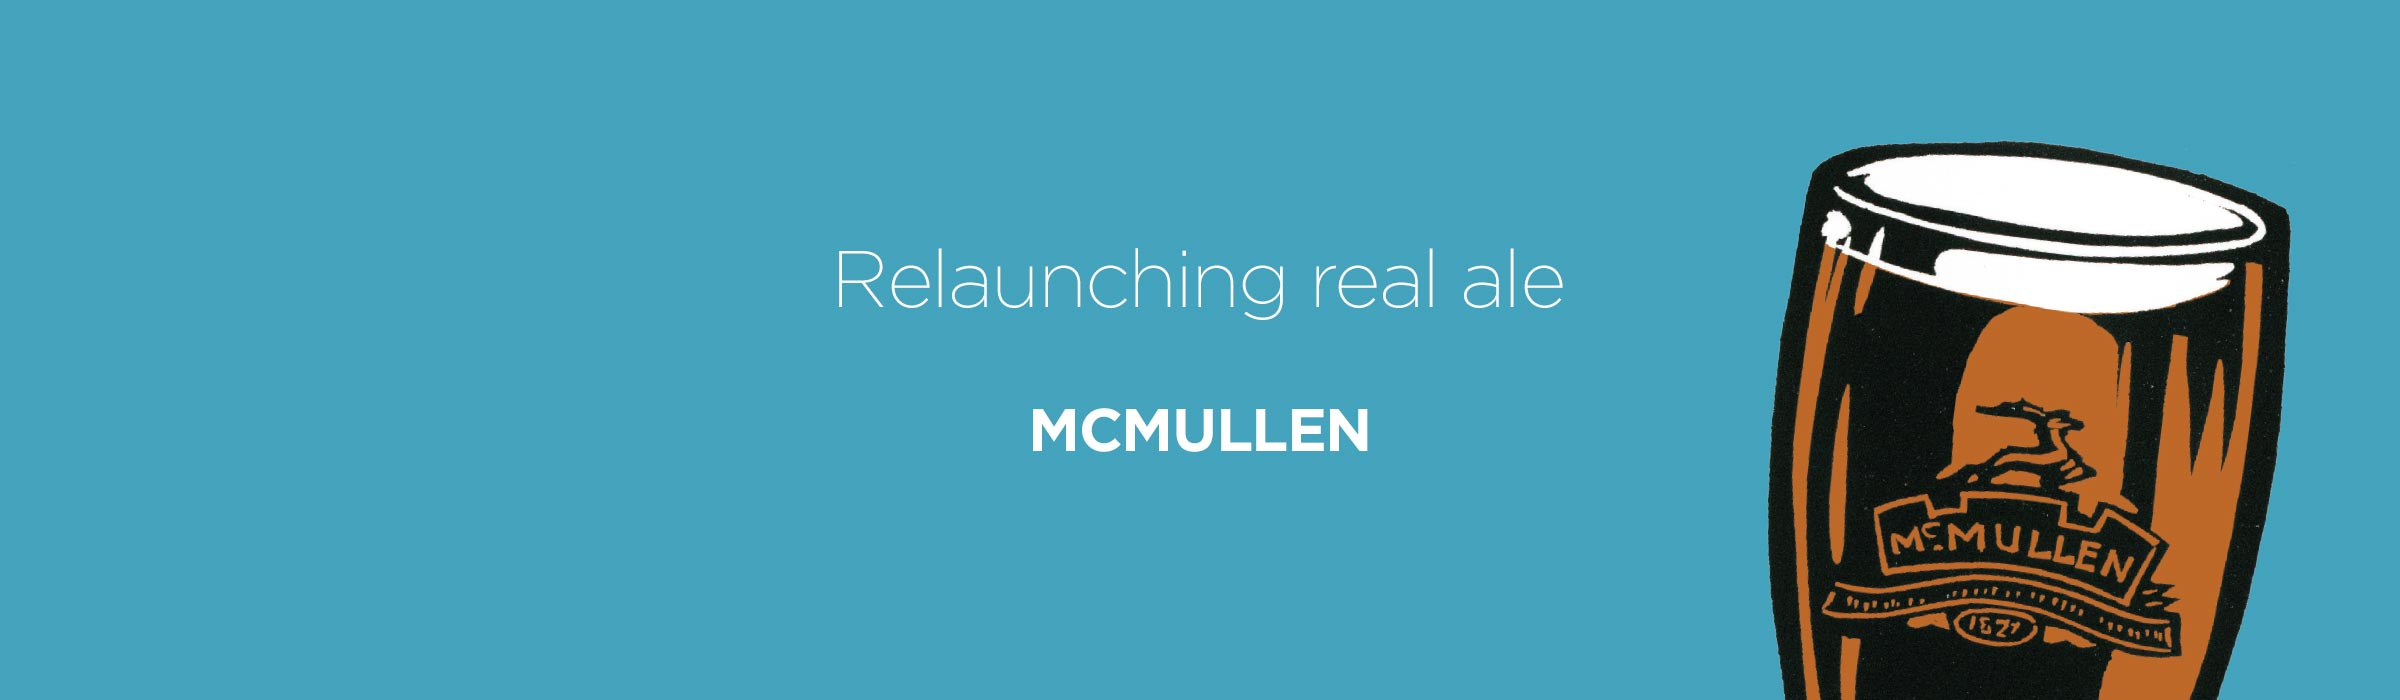 McMullen – Relaunching real ale